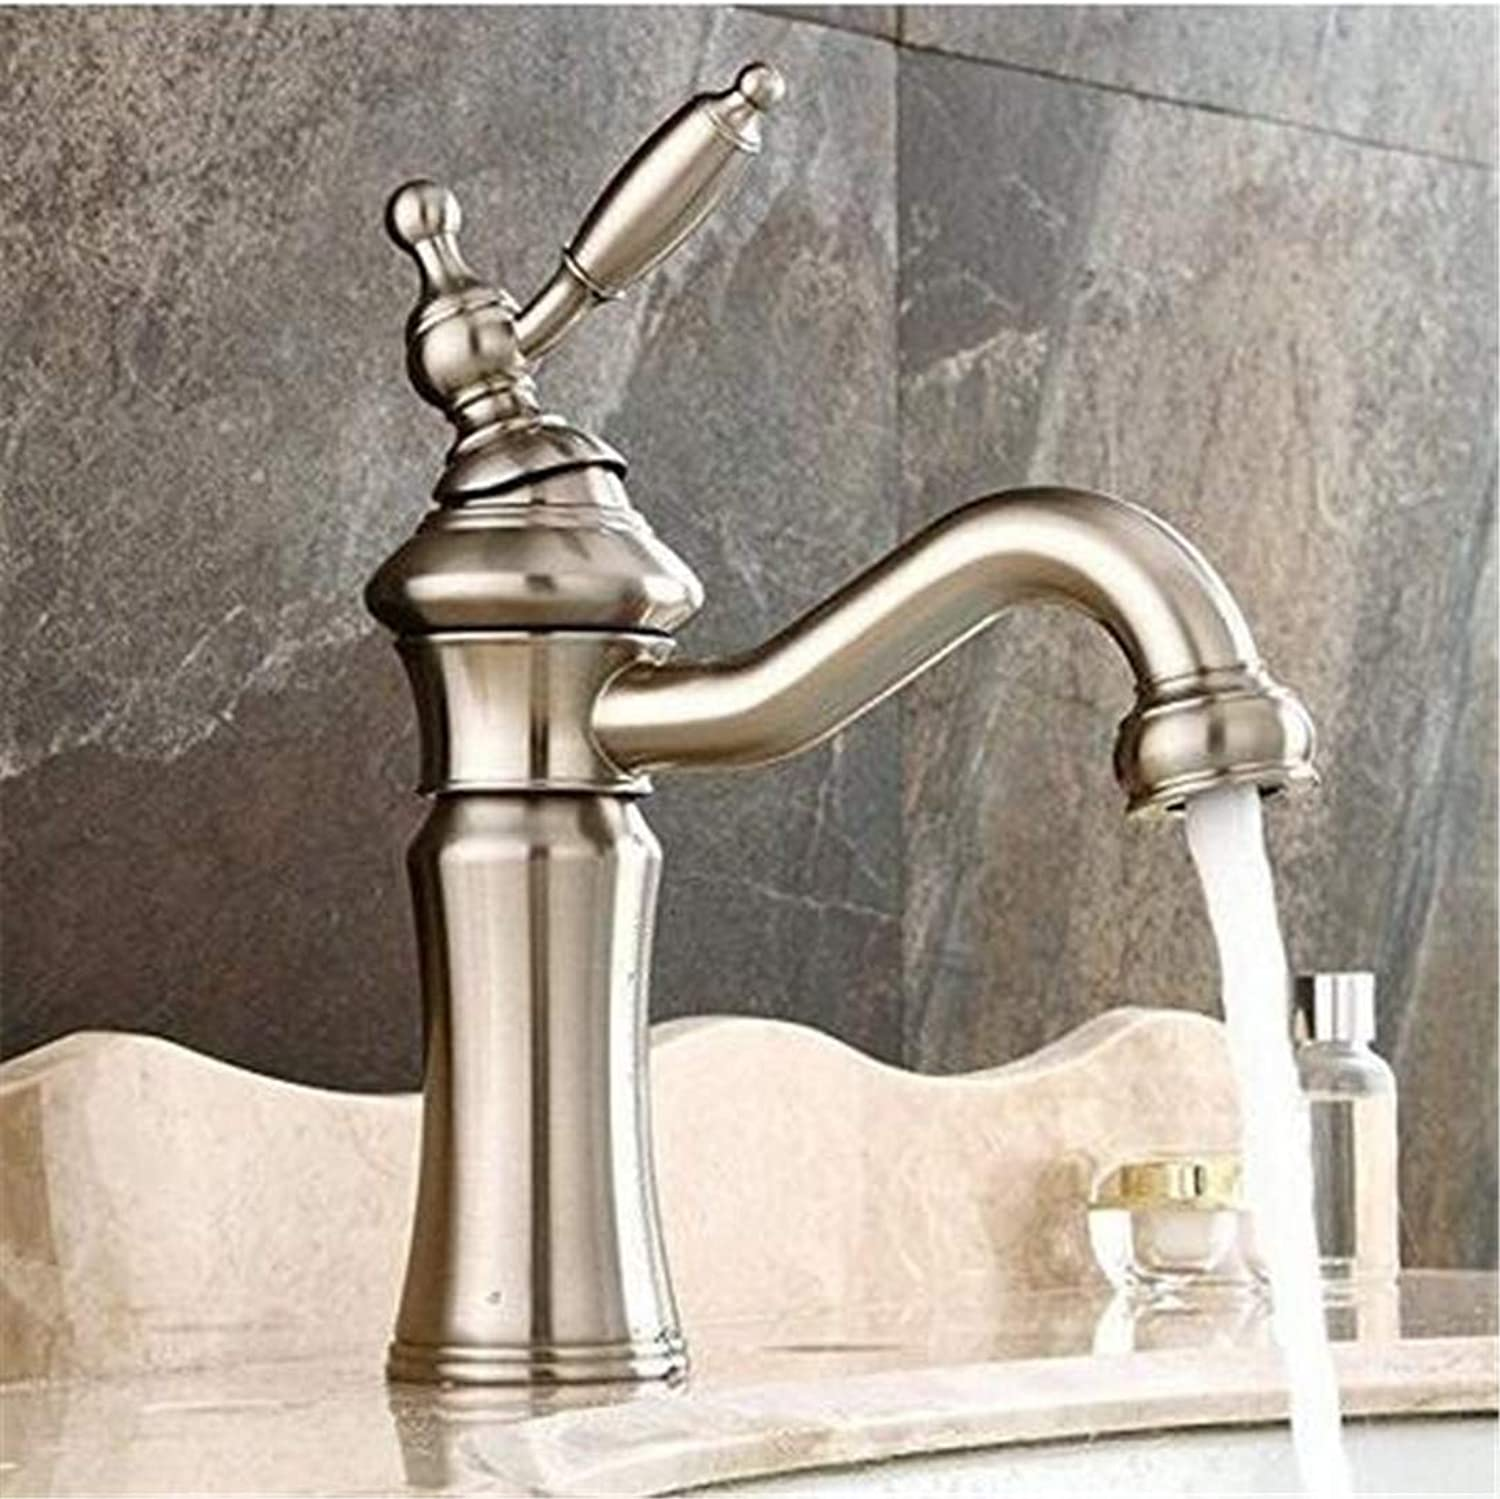 Double Handlefaucets Basin Mixer Faucet Nickel Brushed Brass Material Single Lever Hot and Cold Sink Bathroom Basin Faucet